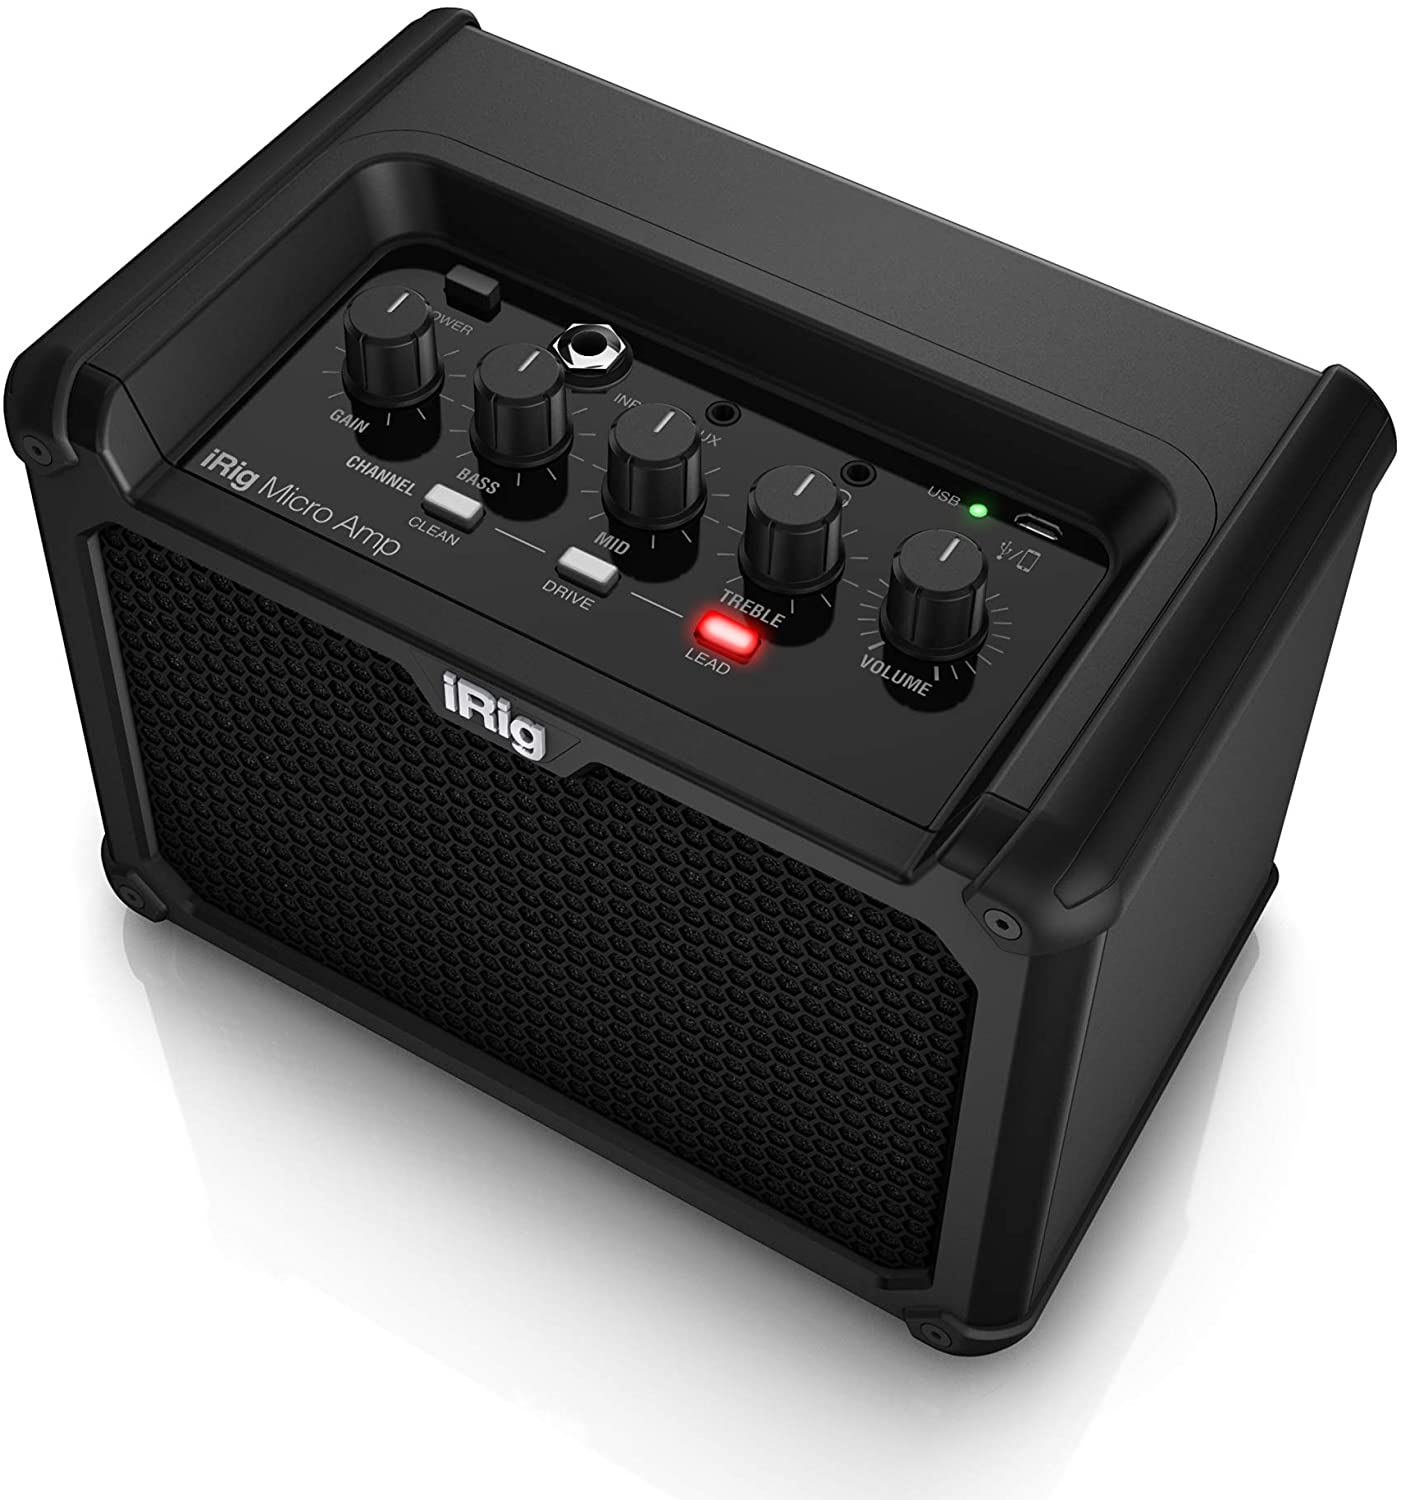 Amazon Com Ik Multimedia Irig Micro Amp 15w Battery Powered Guitar Amplifier With Ios Usb Interface Ip Irig Microamp In Musical Instruments